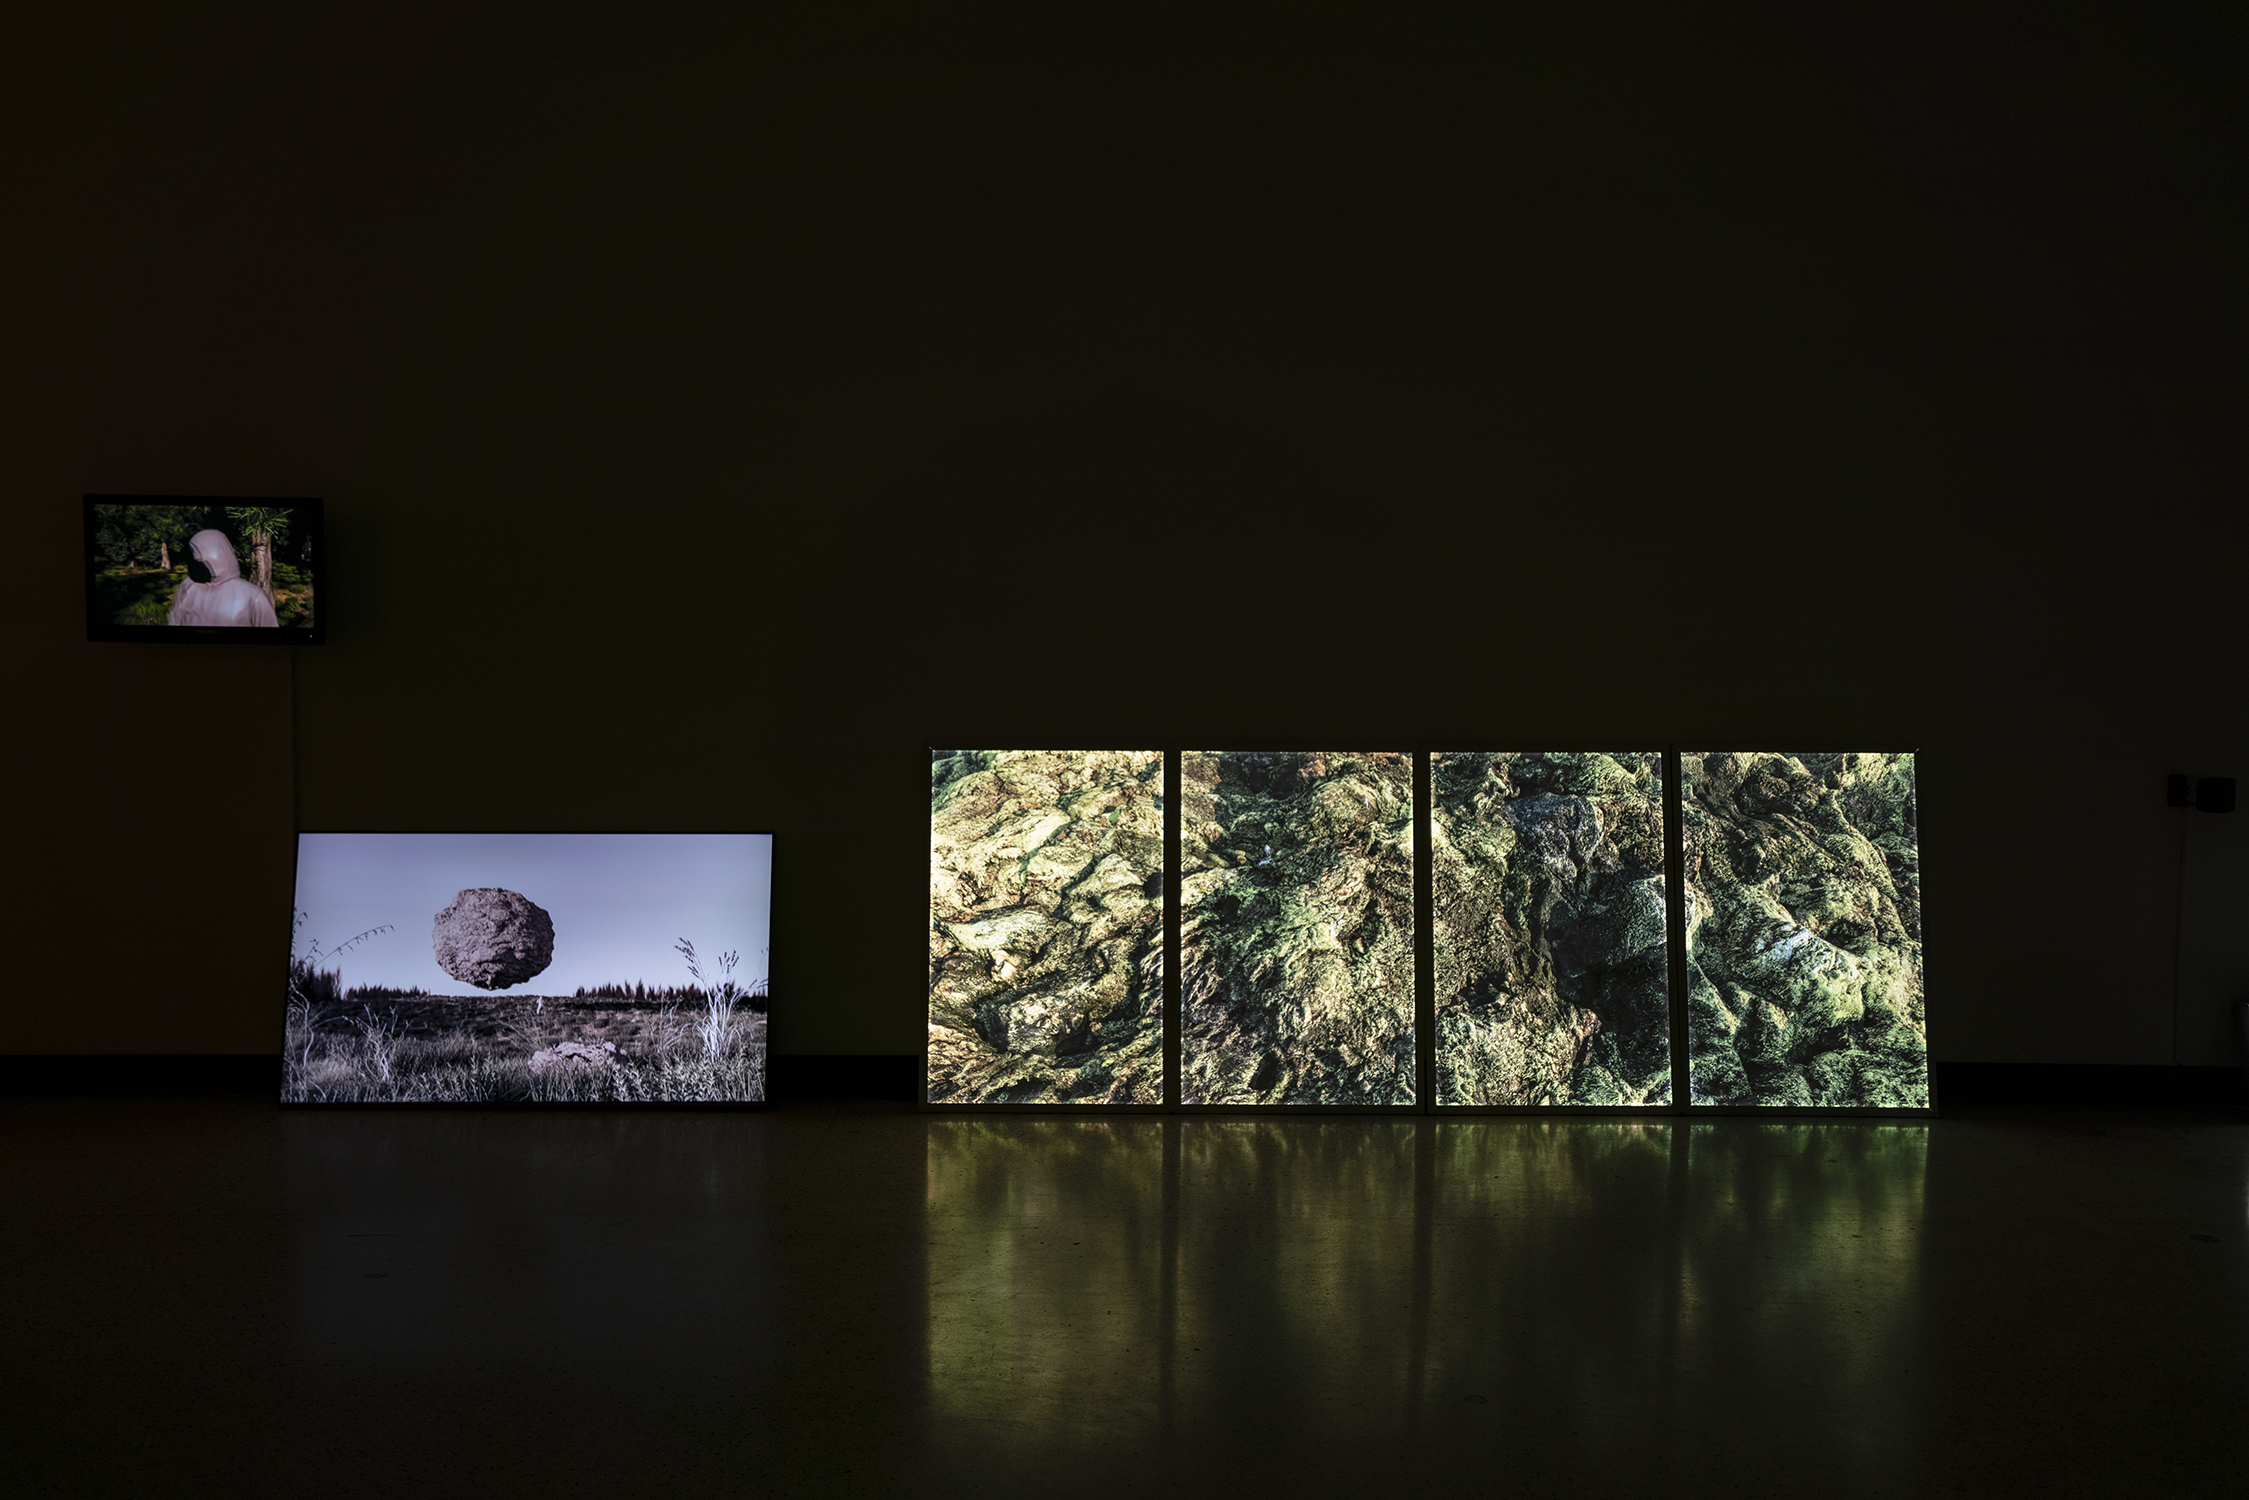 """""""to Witness"""" - 3 videos on TV, single 1-minute video on TV, and 4 part light box photograph (3 x 8 feet)"""